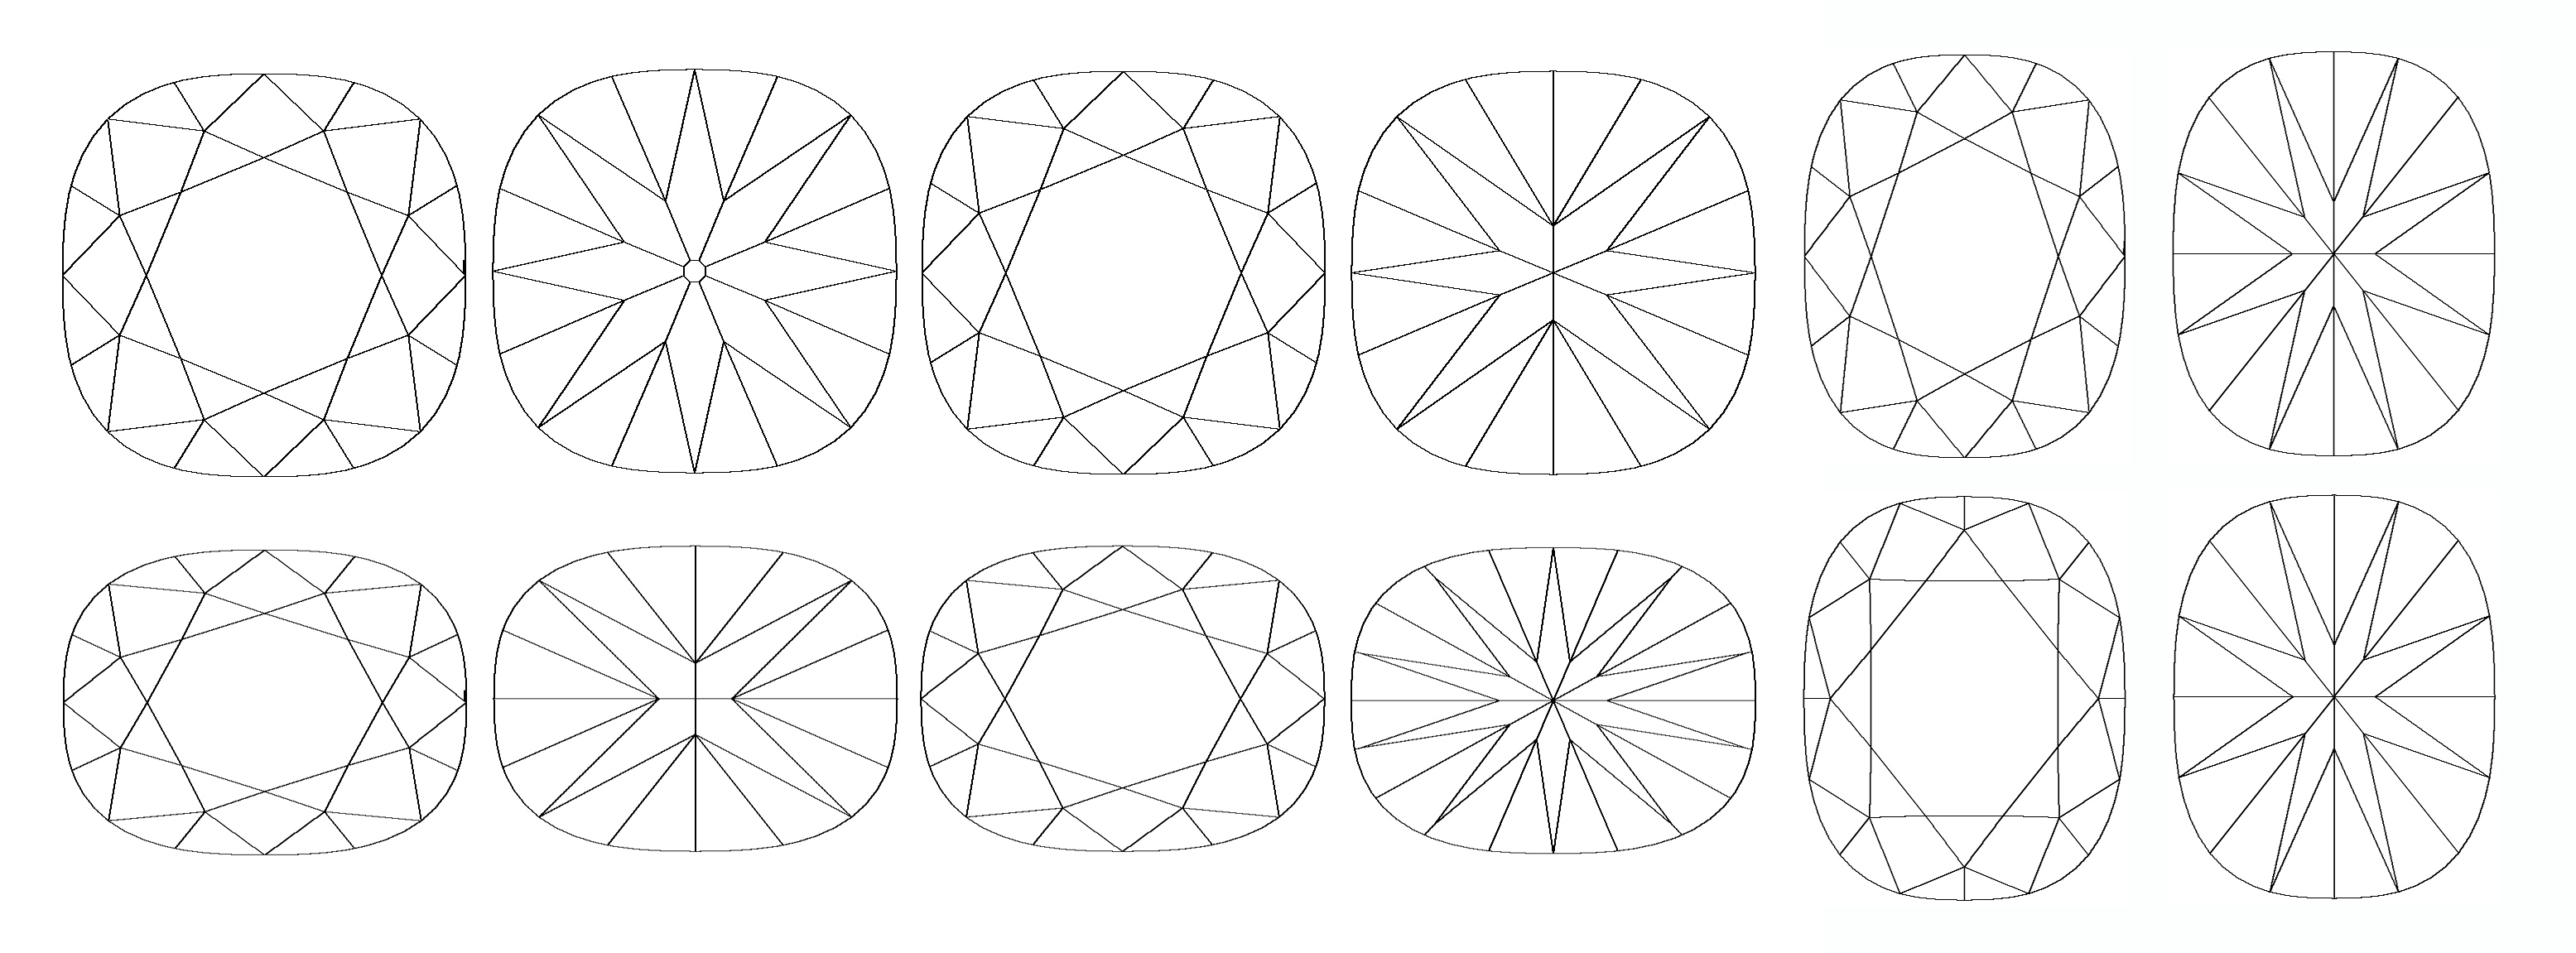 Facet Pattern Variation